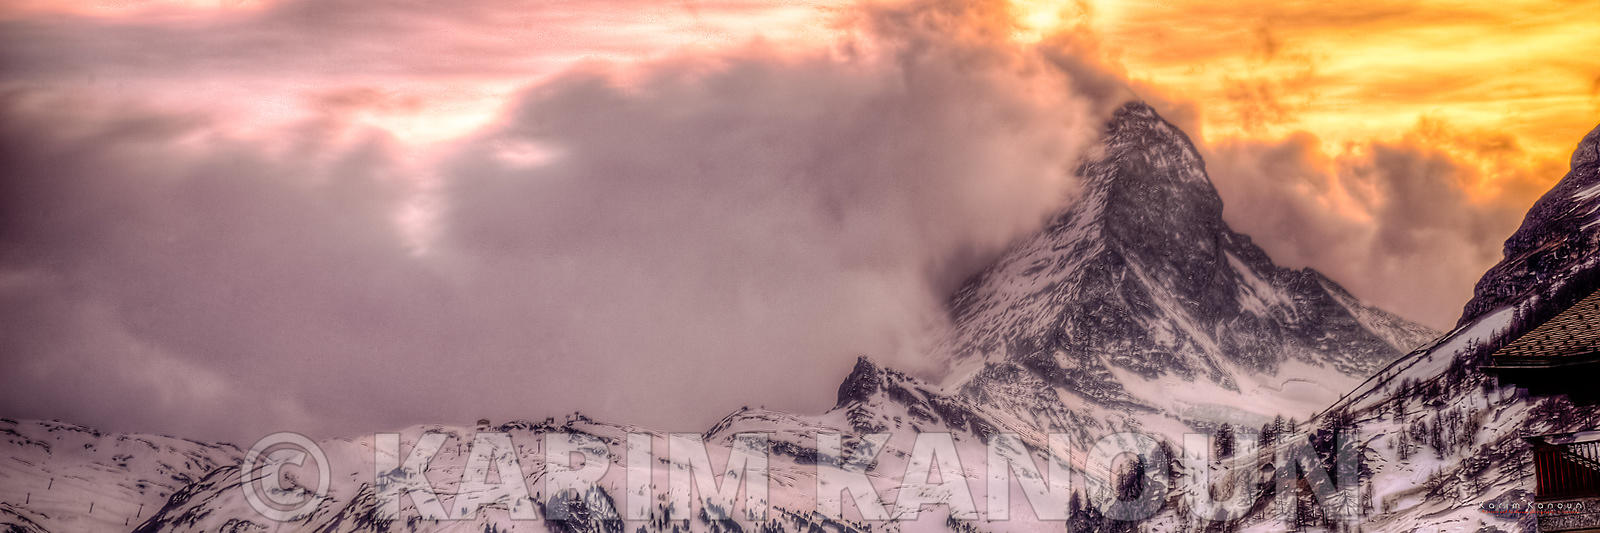 Panorama - The Matterhorn with a volcano style sunset - Zermatt